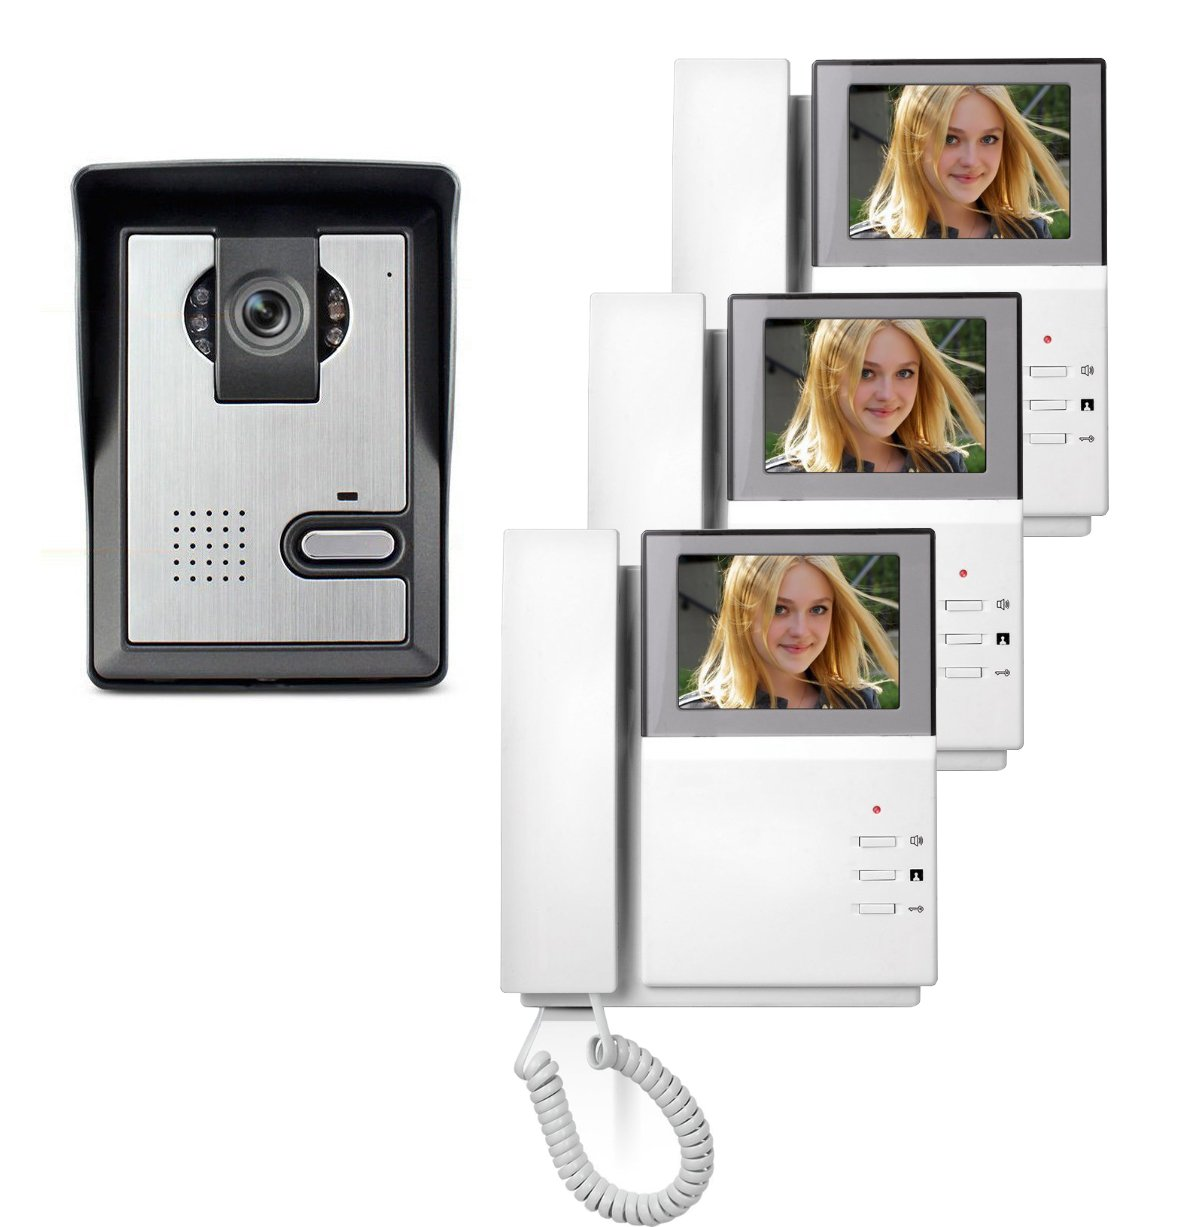 AMOCAM Video Door Phone System, 4.3 Inch Clear LCD Monitor Wired Video Intercom Doorbell Kits with 3PCS Monitor, Night Vision Camera Door Bell Intercom, Doorphone Telephone style for Home Improvement